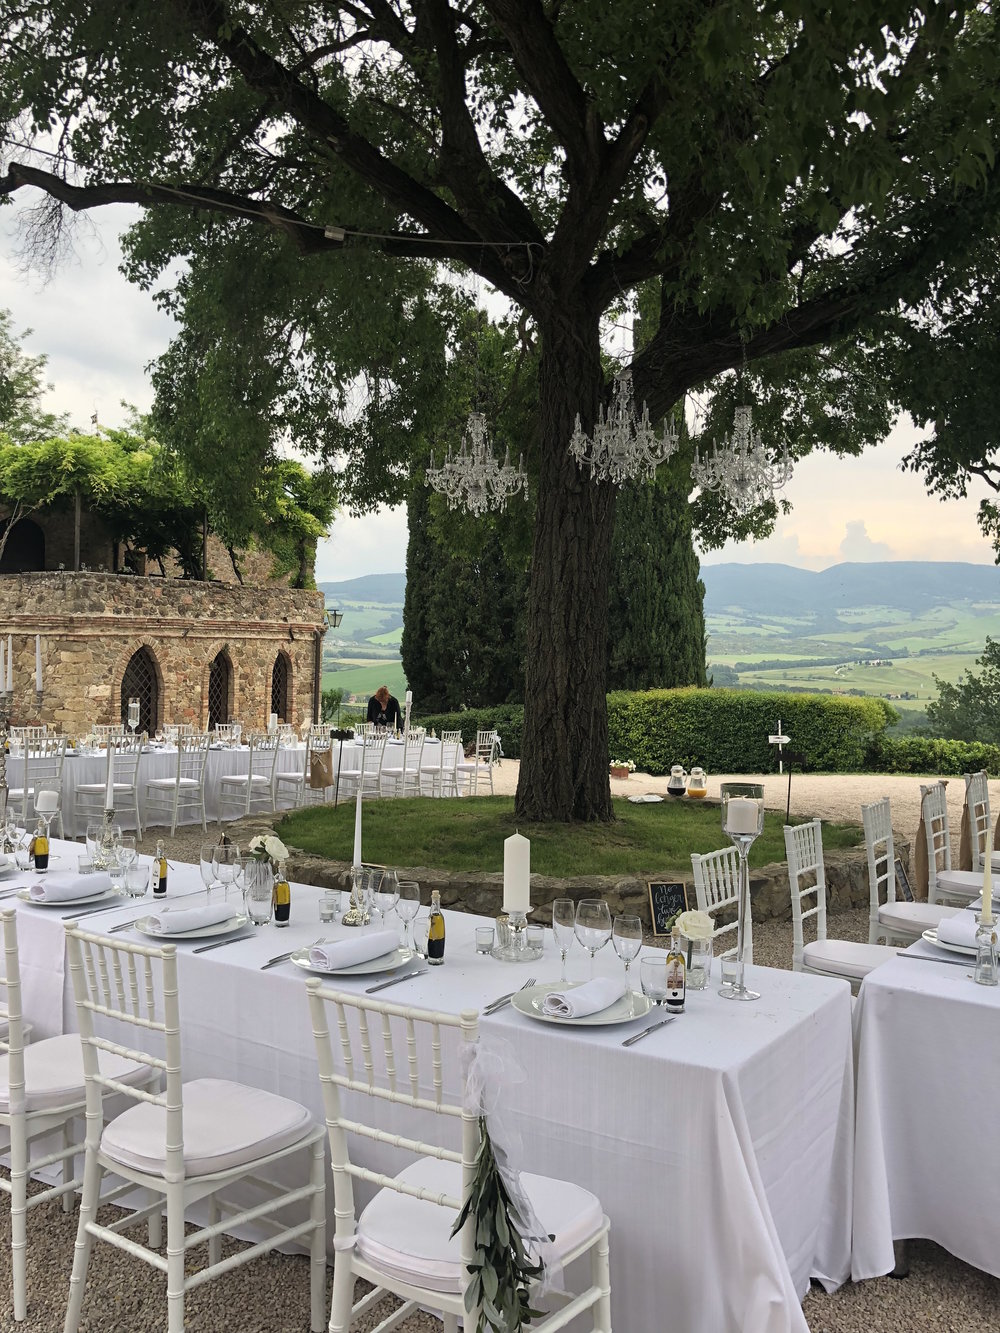 Villa Gino wedding 3.jpeg